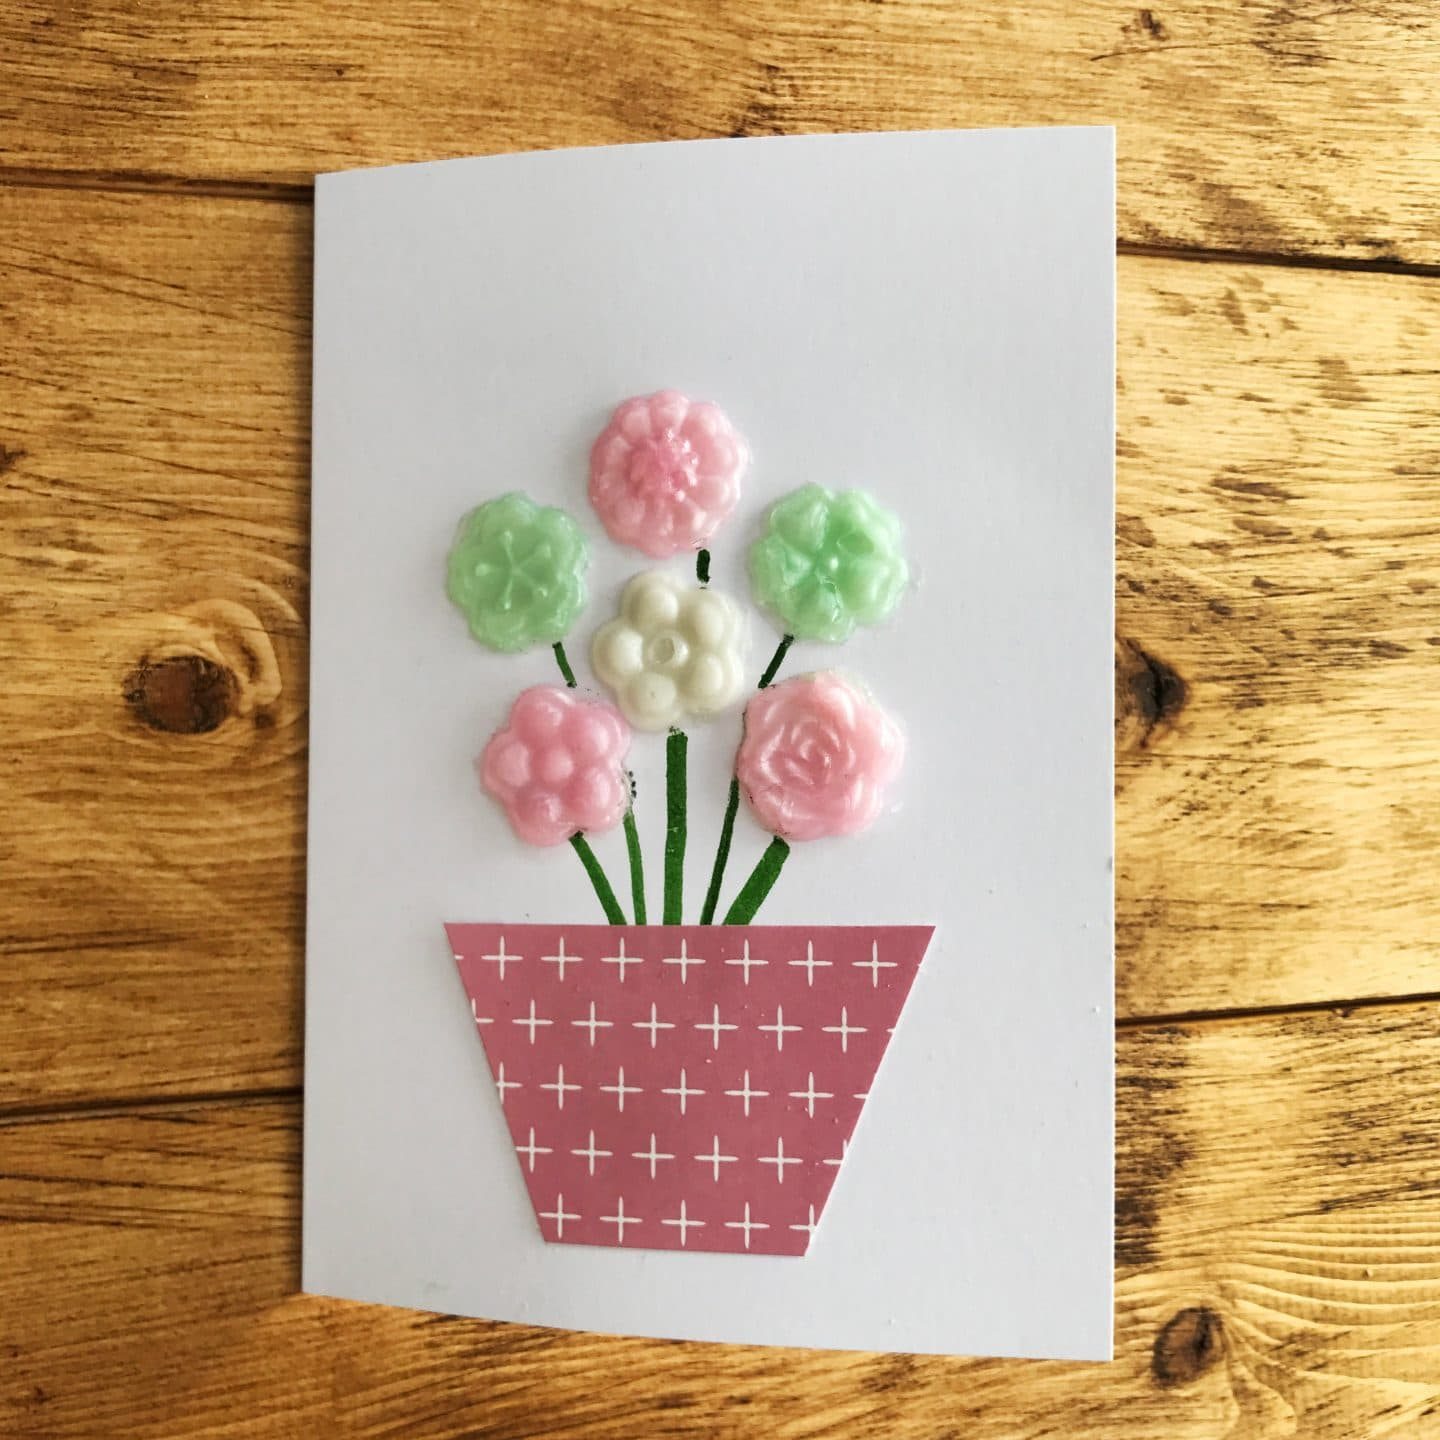 I was so impressed with how well the girls copied my design easily creating a gorgeous hand made mothers day card that beats any you can buy in the shop